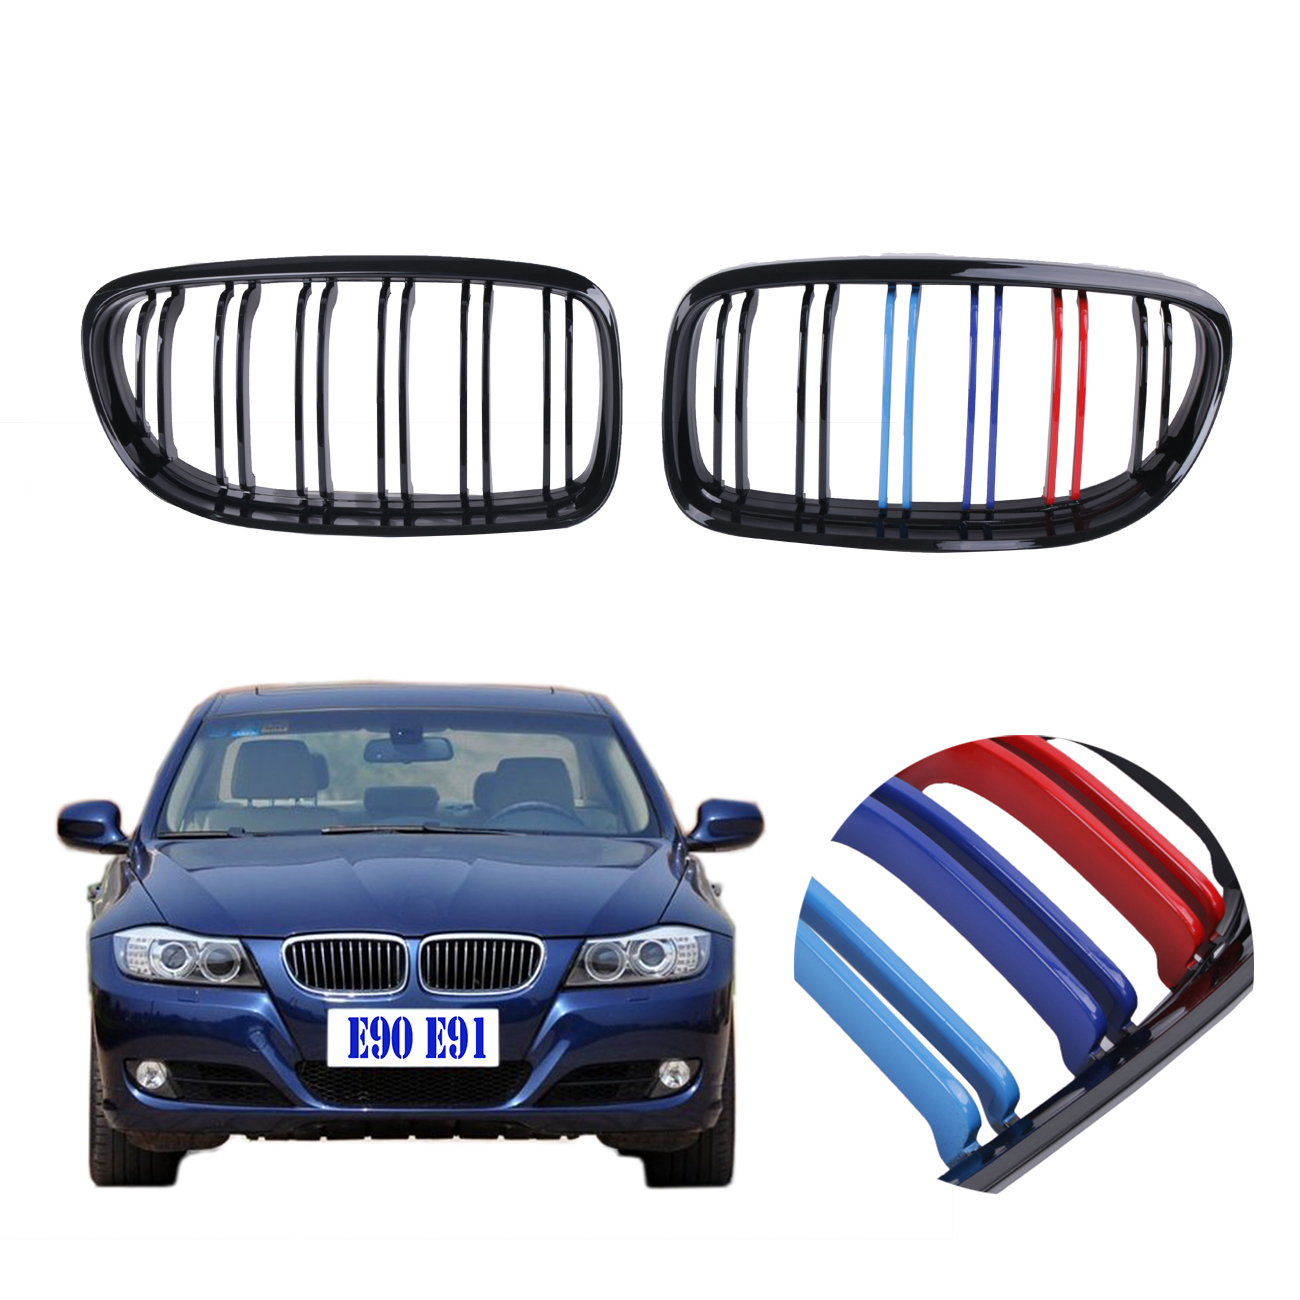 For BMW E90 E91 LCI 318i 320i 320d 328i 335i 2009 2010 2011 Glossy Black M-color Front Kidney Grilles Double line Grill #P461 bmw 318 в москве